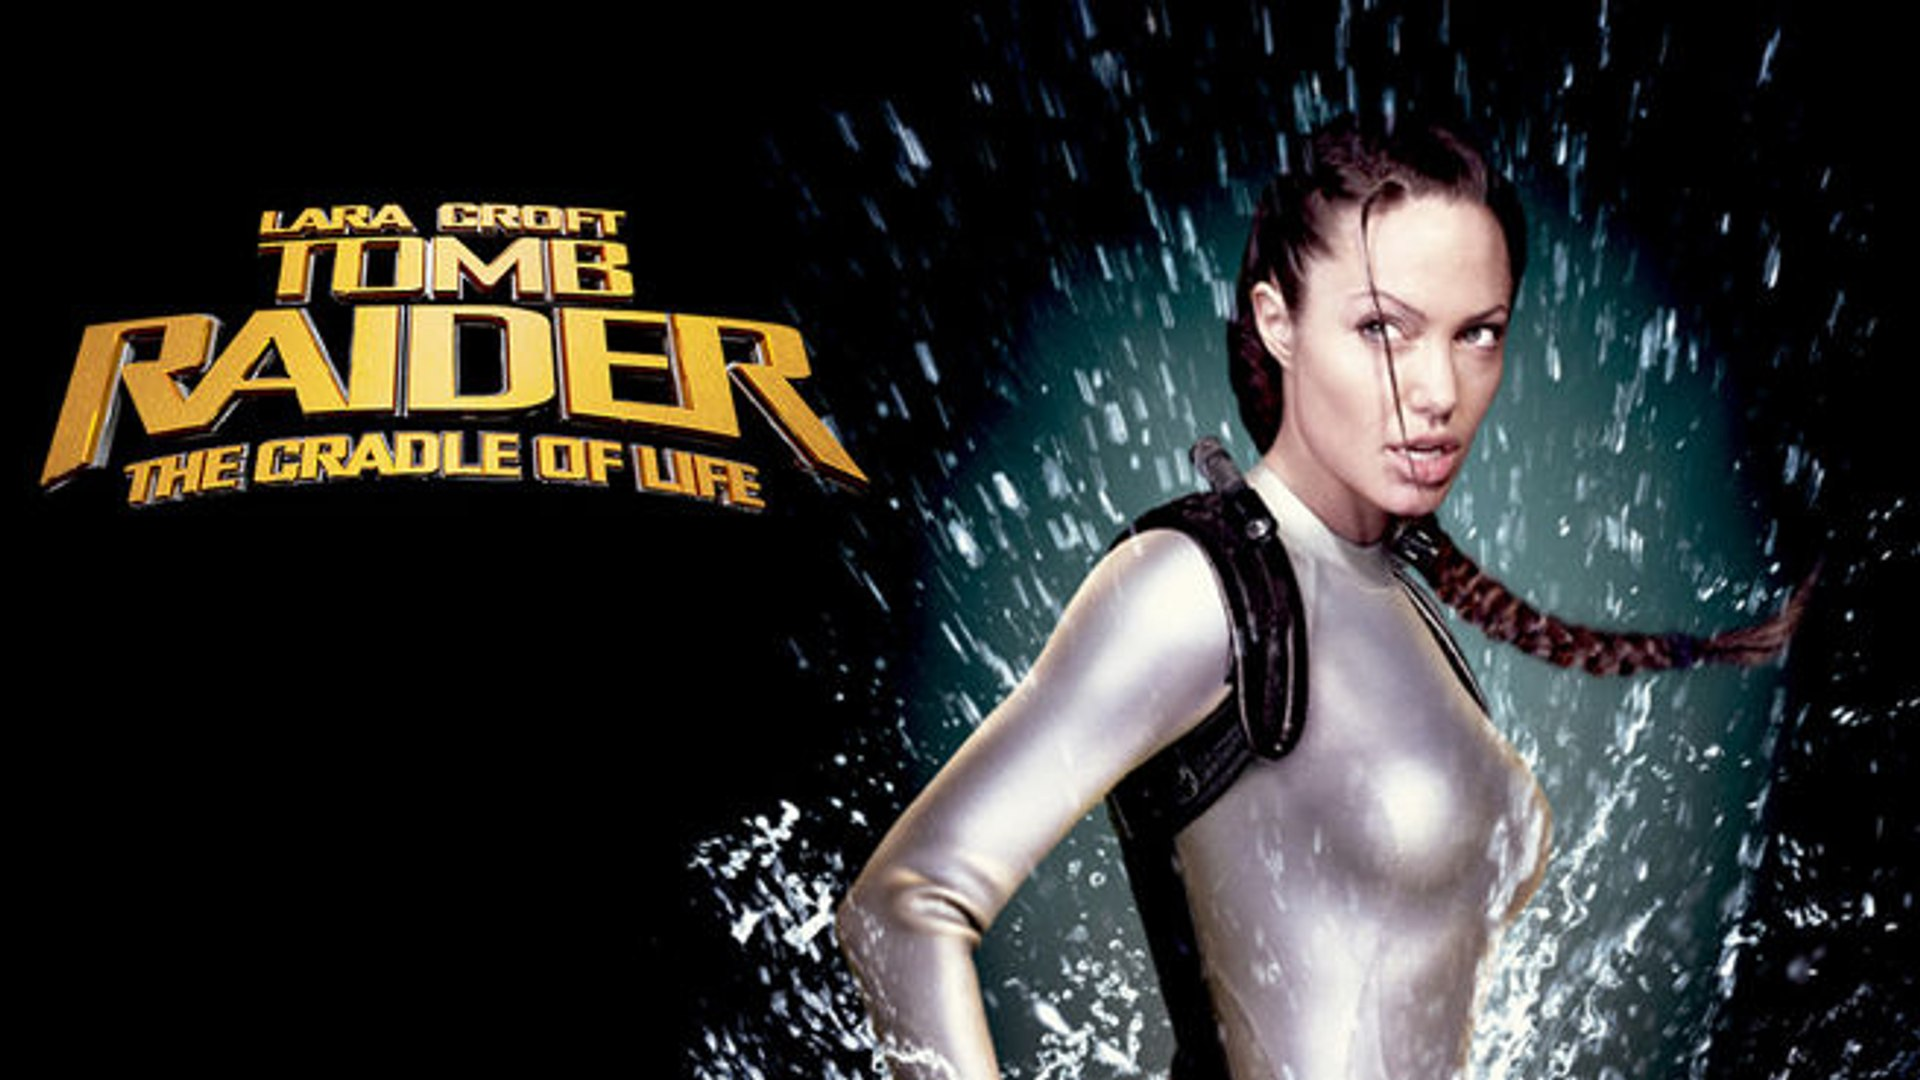 Lara Croft Tomb Raider The Cradle Of Life Movie 2003 Angelina